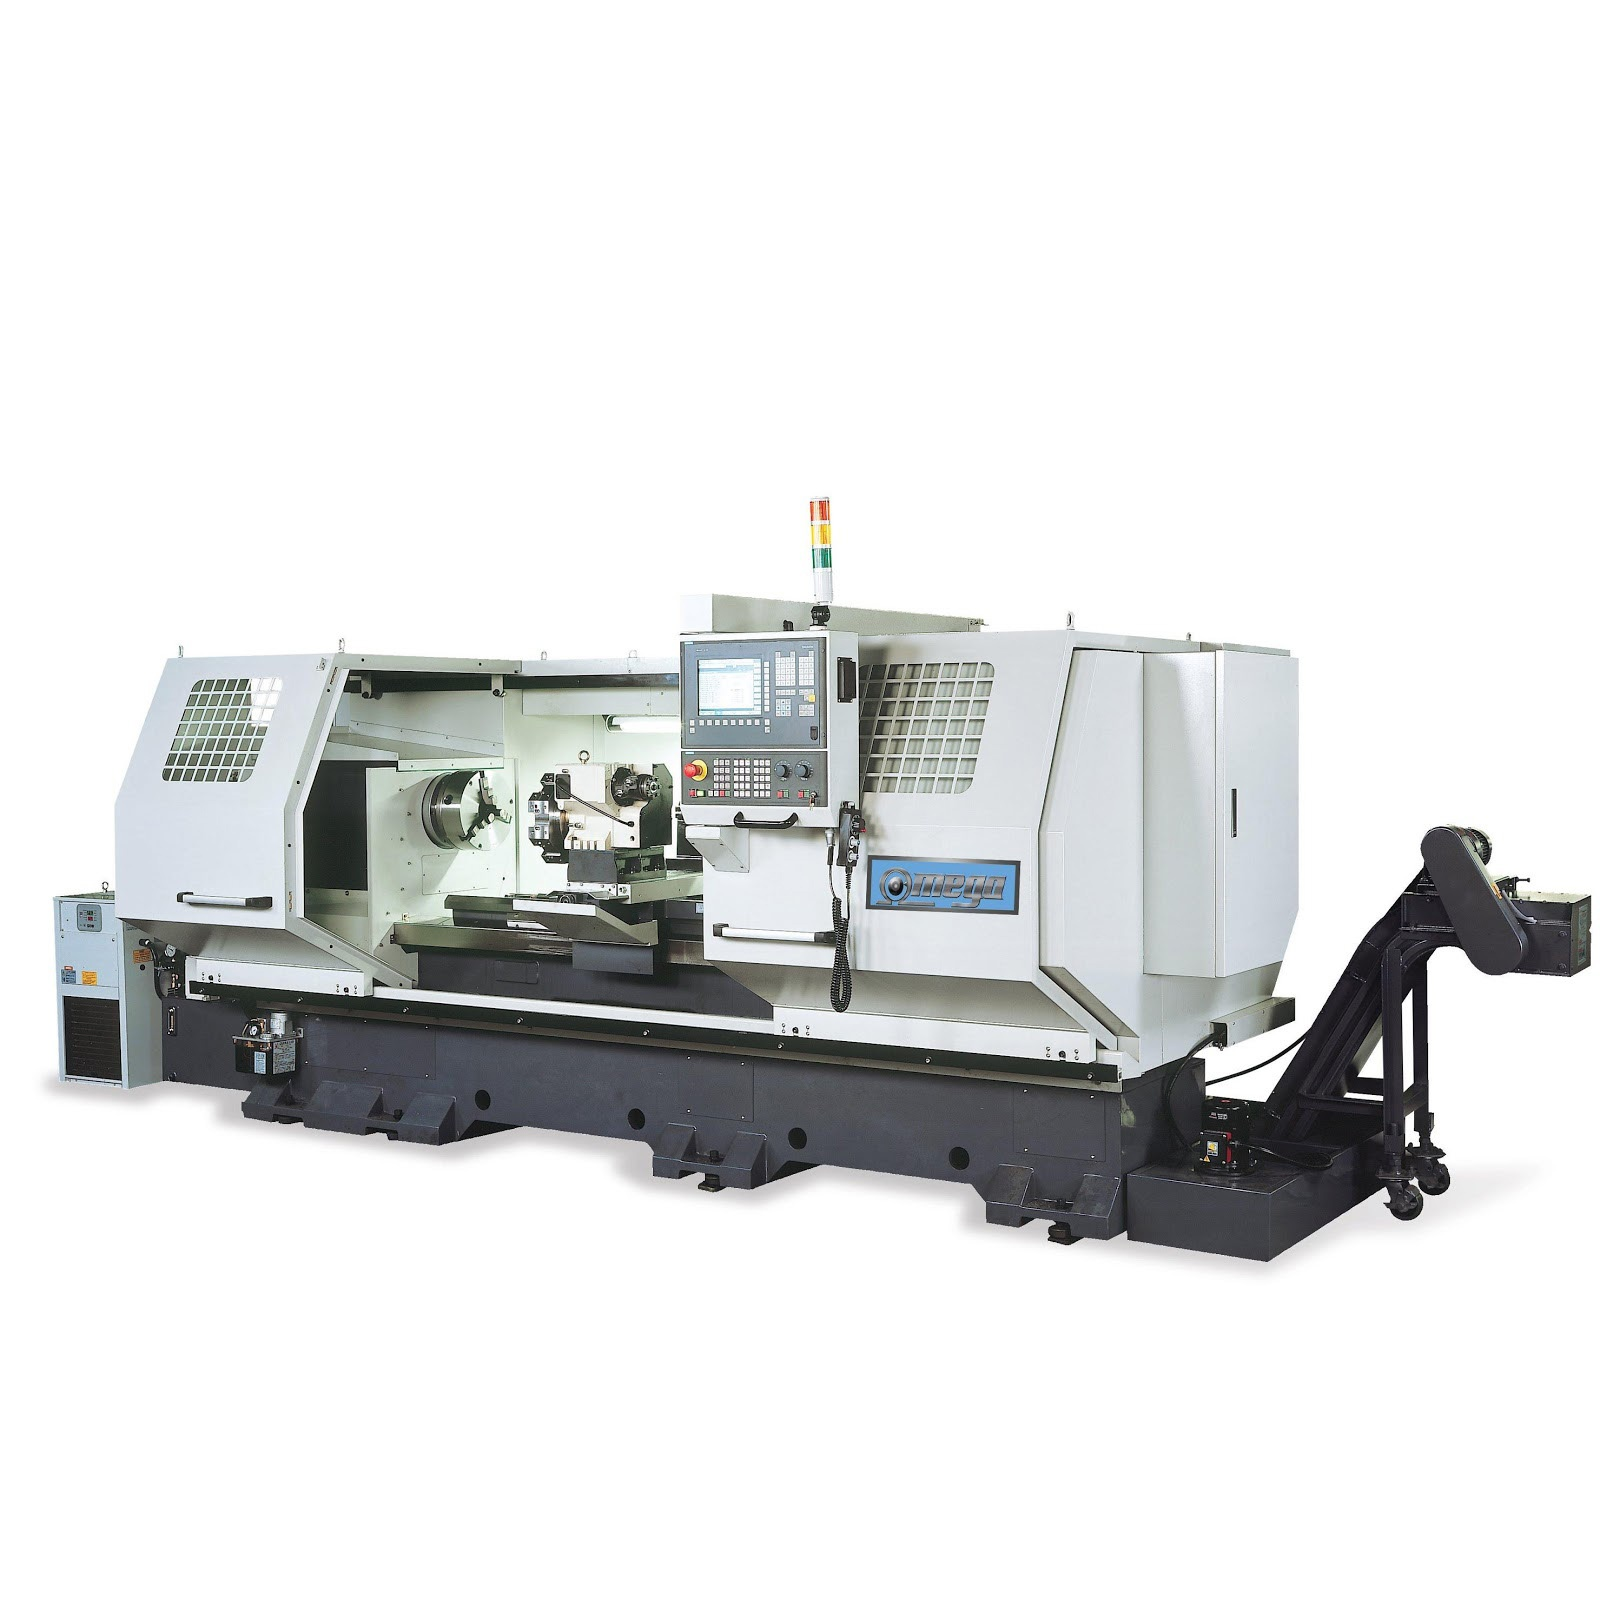 Omega Heavy Duty Precision CNC Lathe Model DL-660